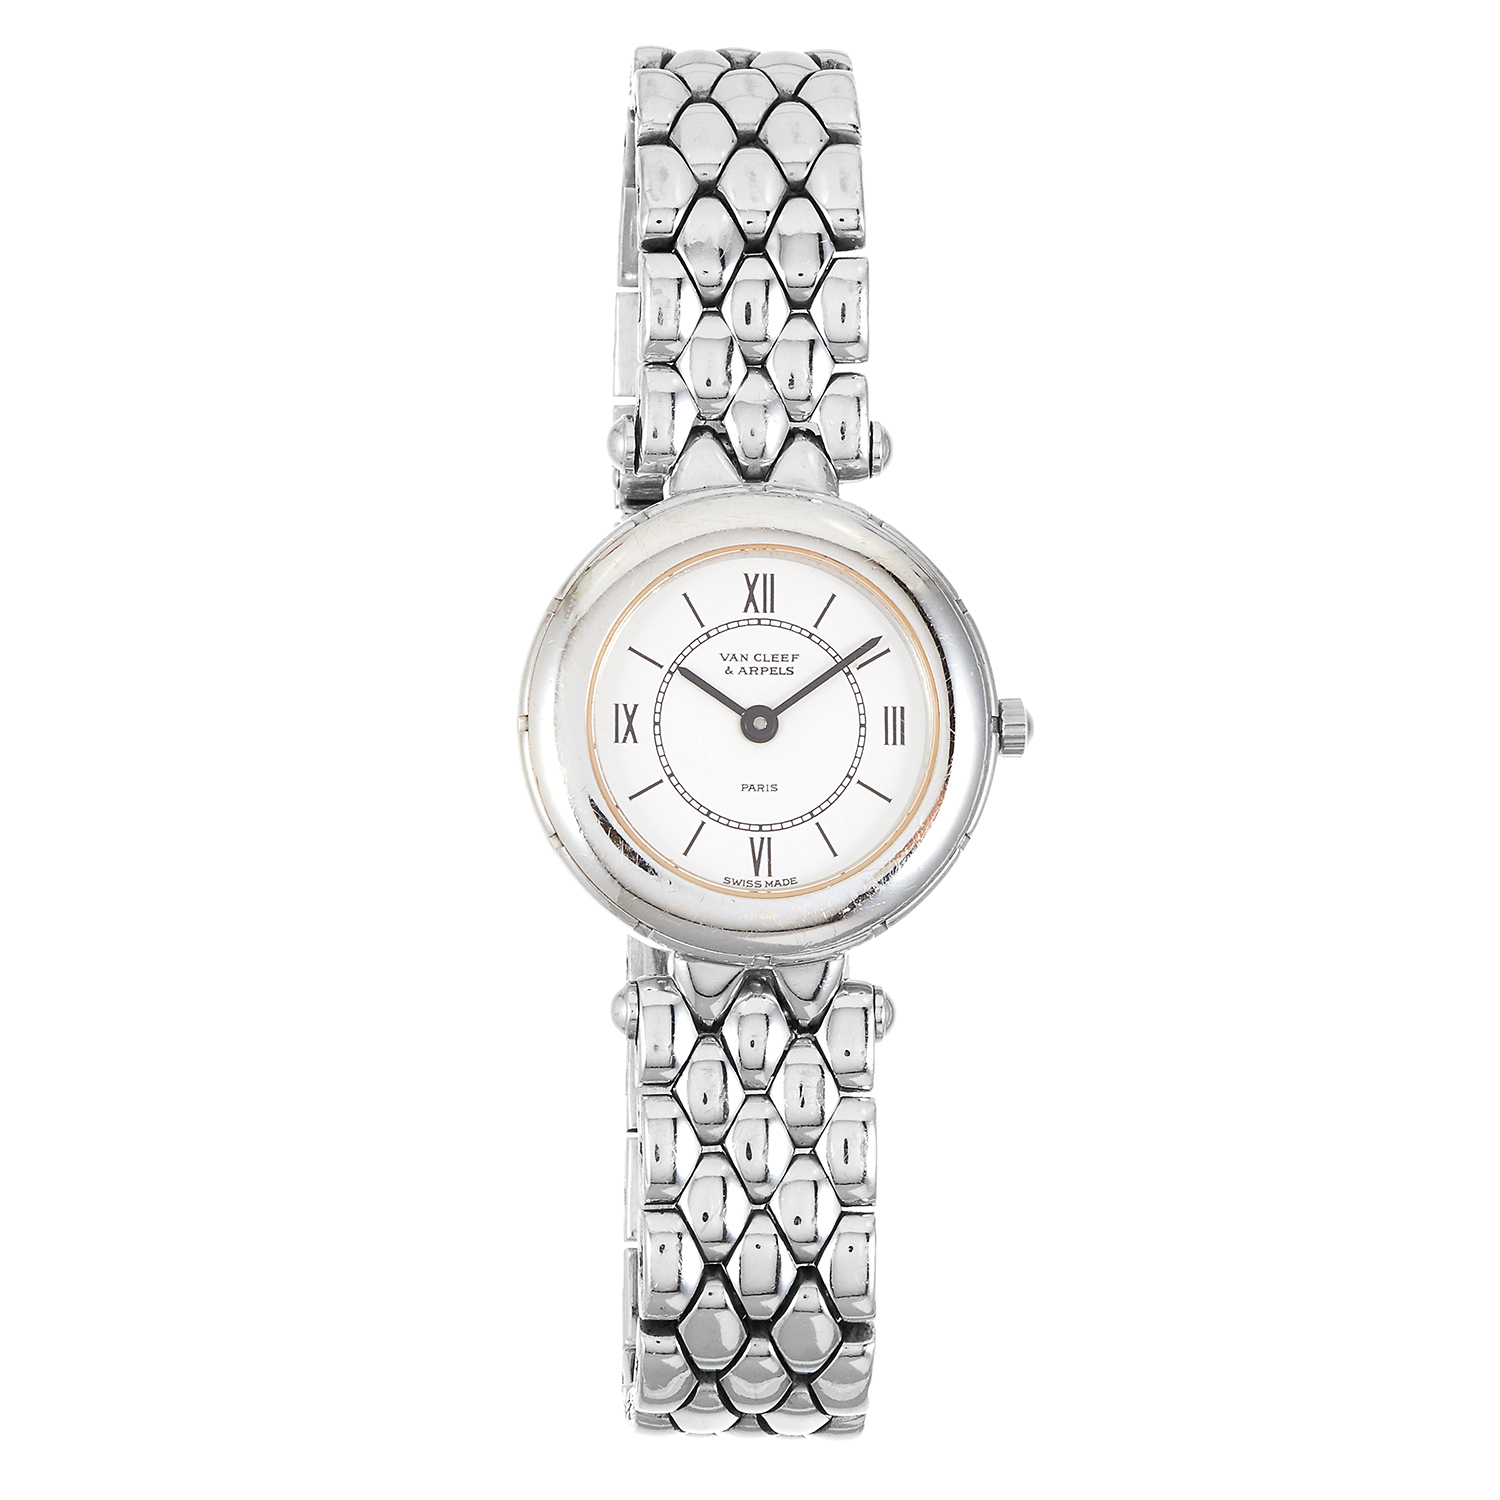 Los 153 - A LADIES WRIST WATCH, VAN CLEEF AND ARPELS in 18ct white gold, with white dial, signed Van Cleef and